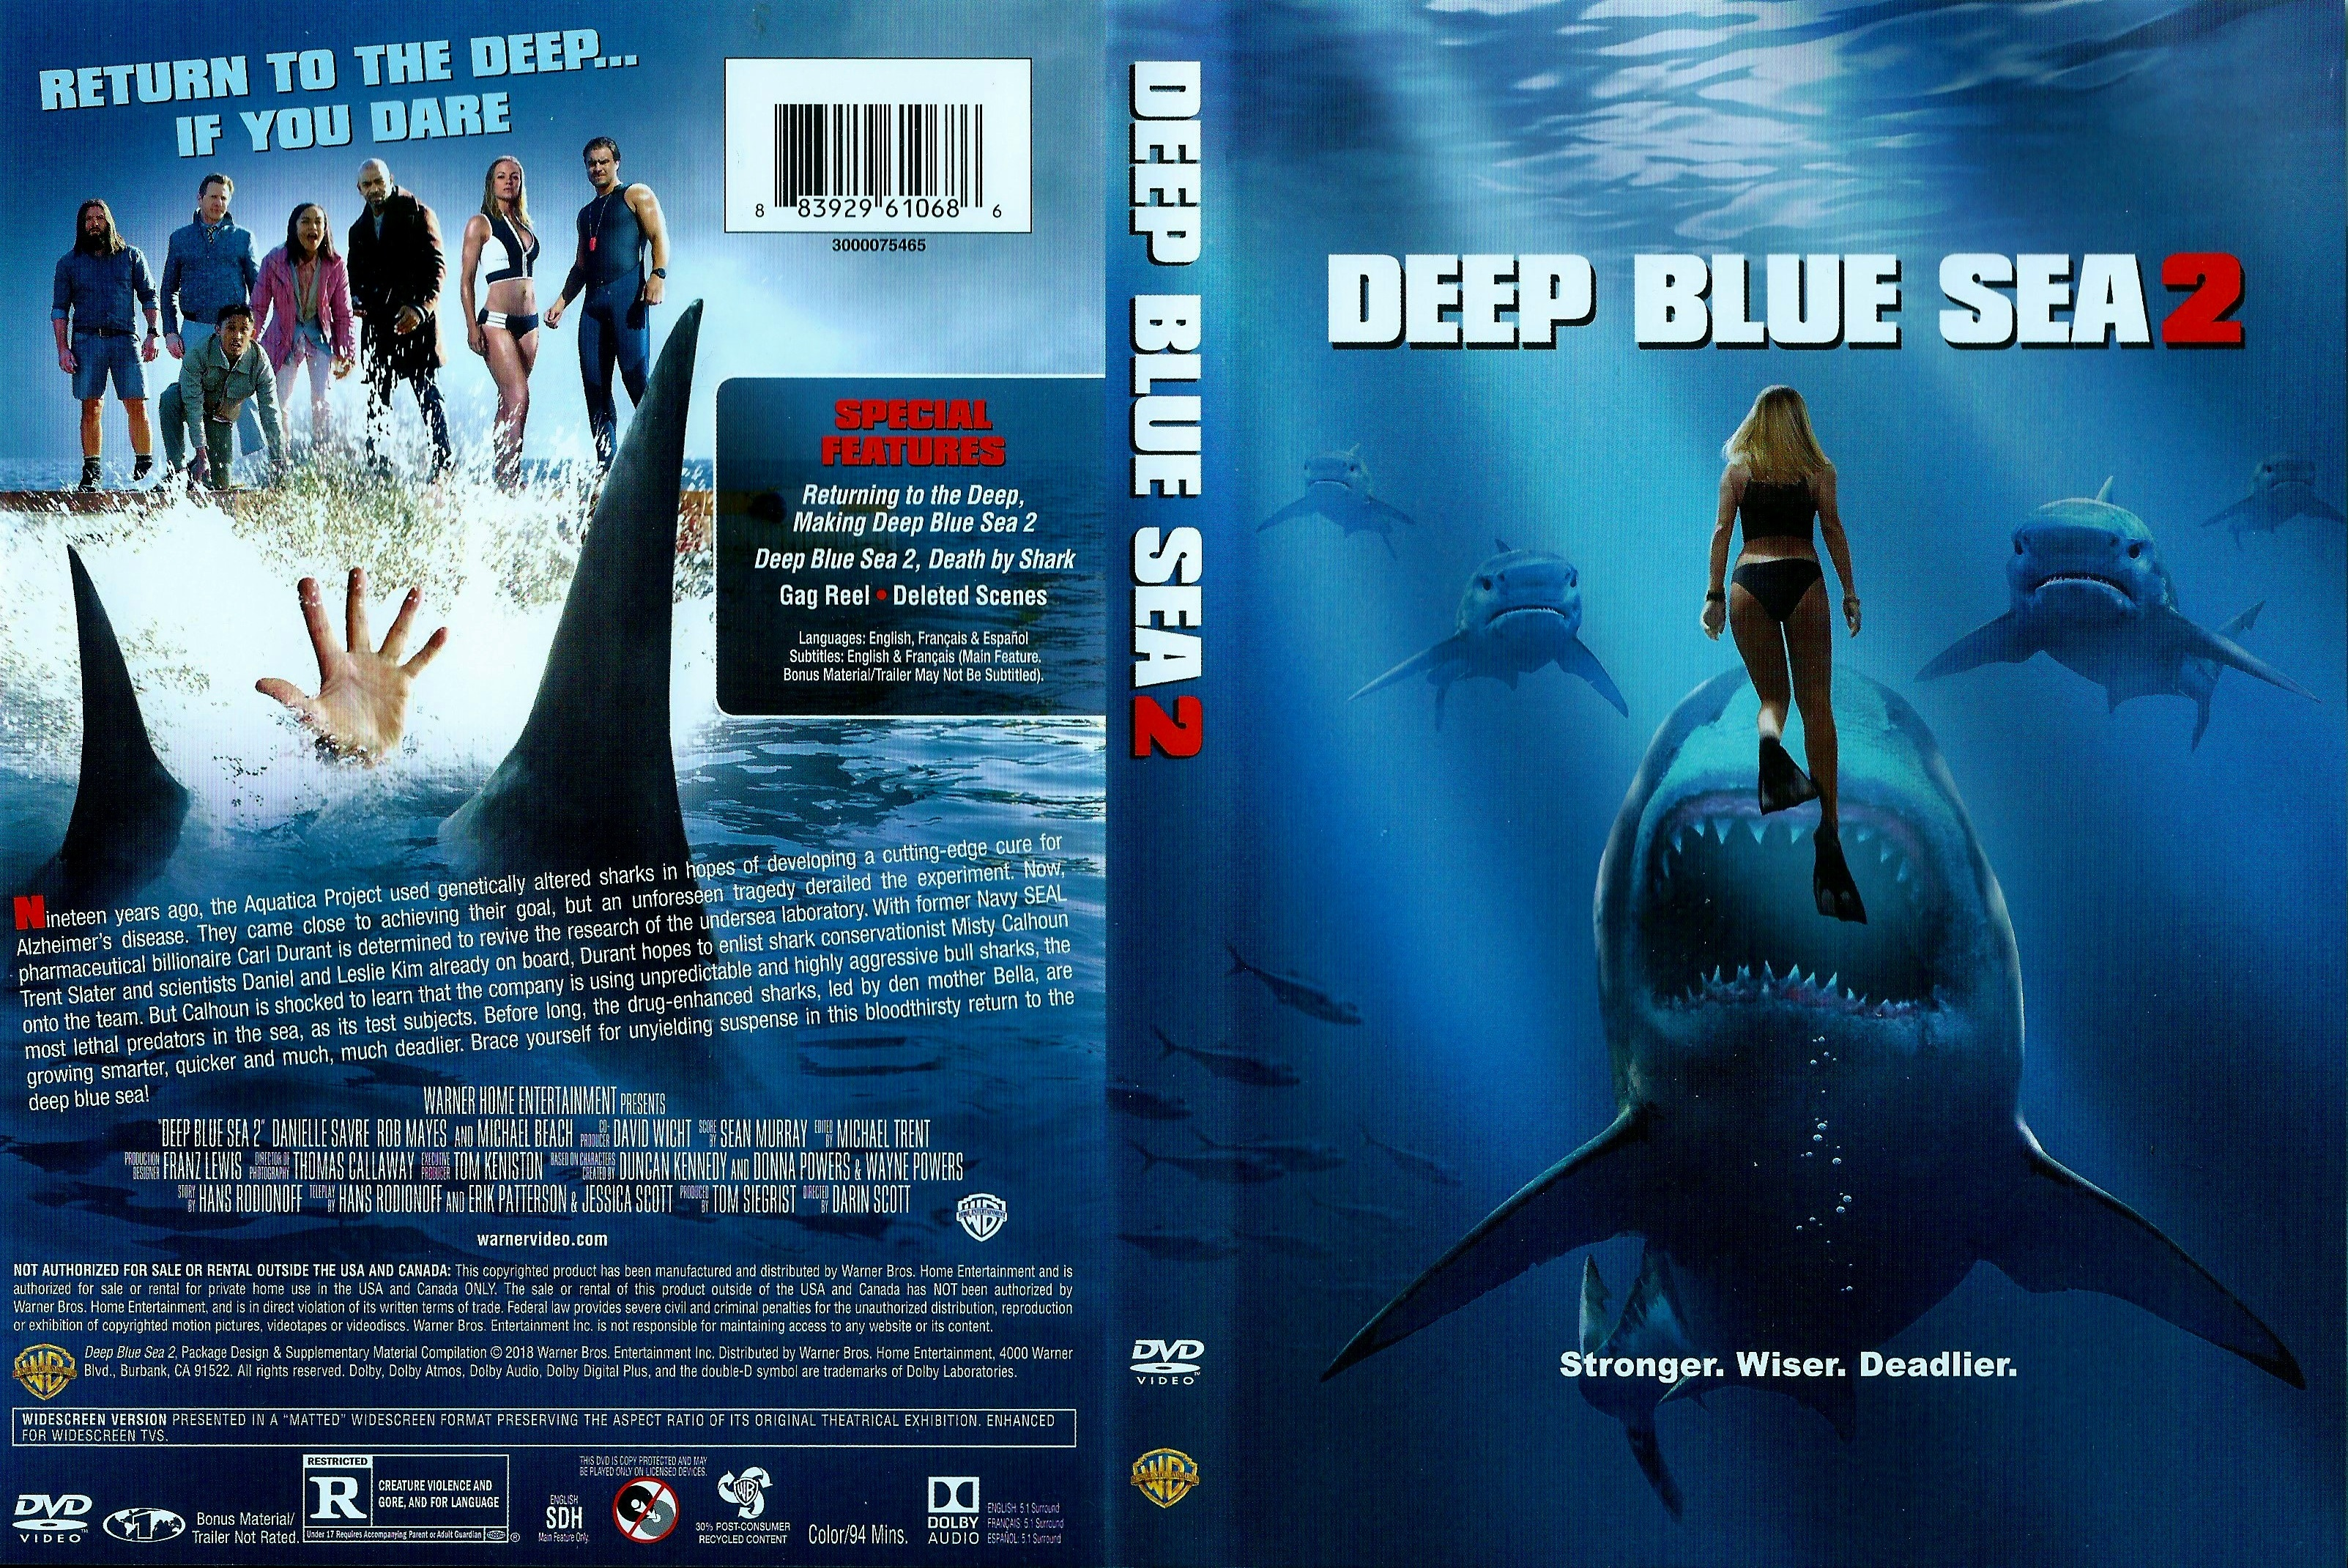 deep blue sea 2 full movie download in english